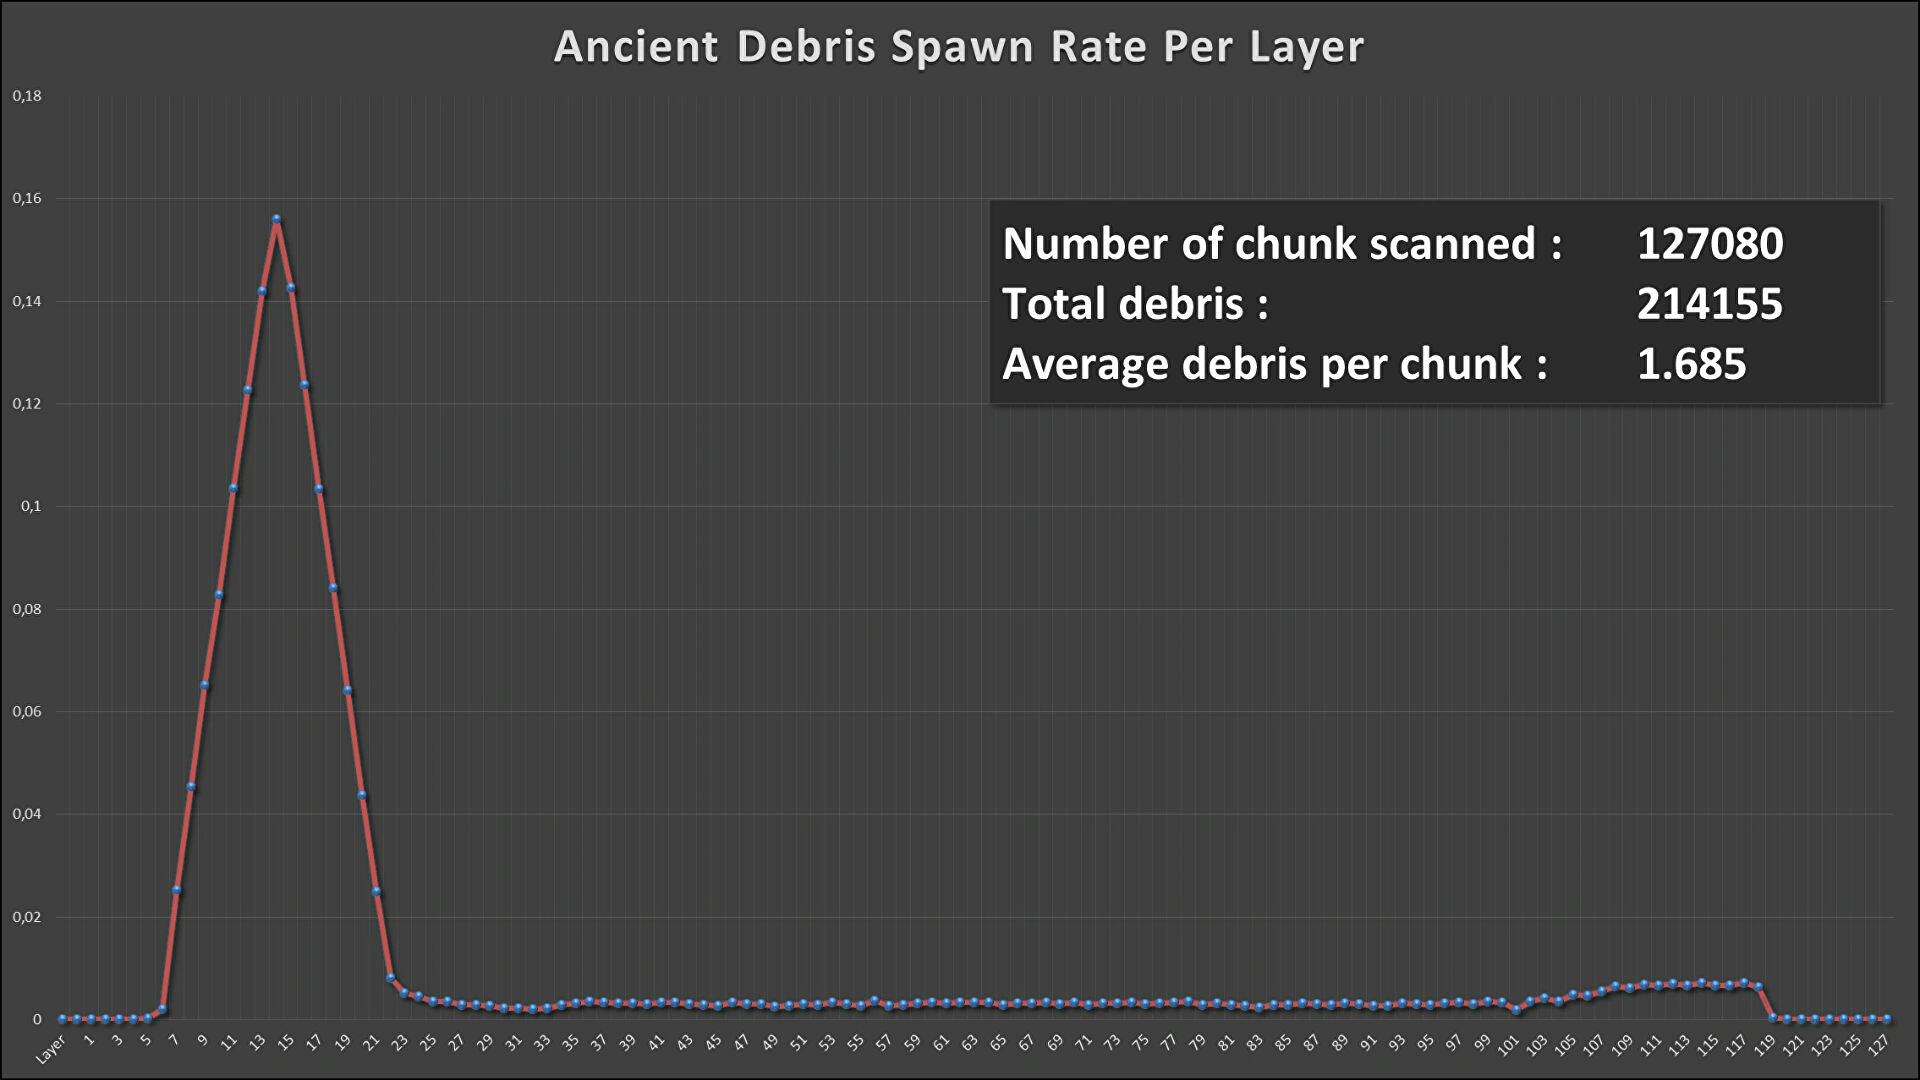 A graph detailing the spawn rate of Ancient Debris in the Nether in Minecraft at each of the Y-levels.